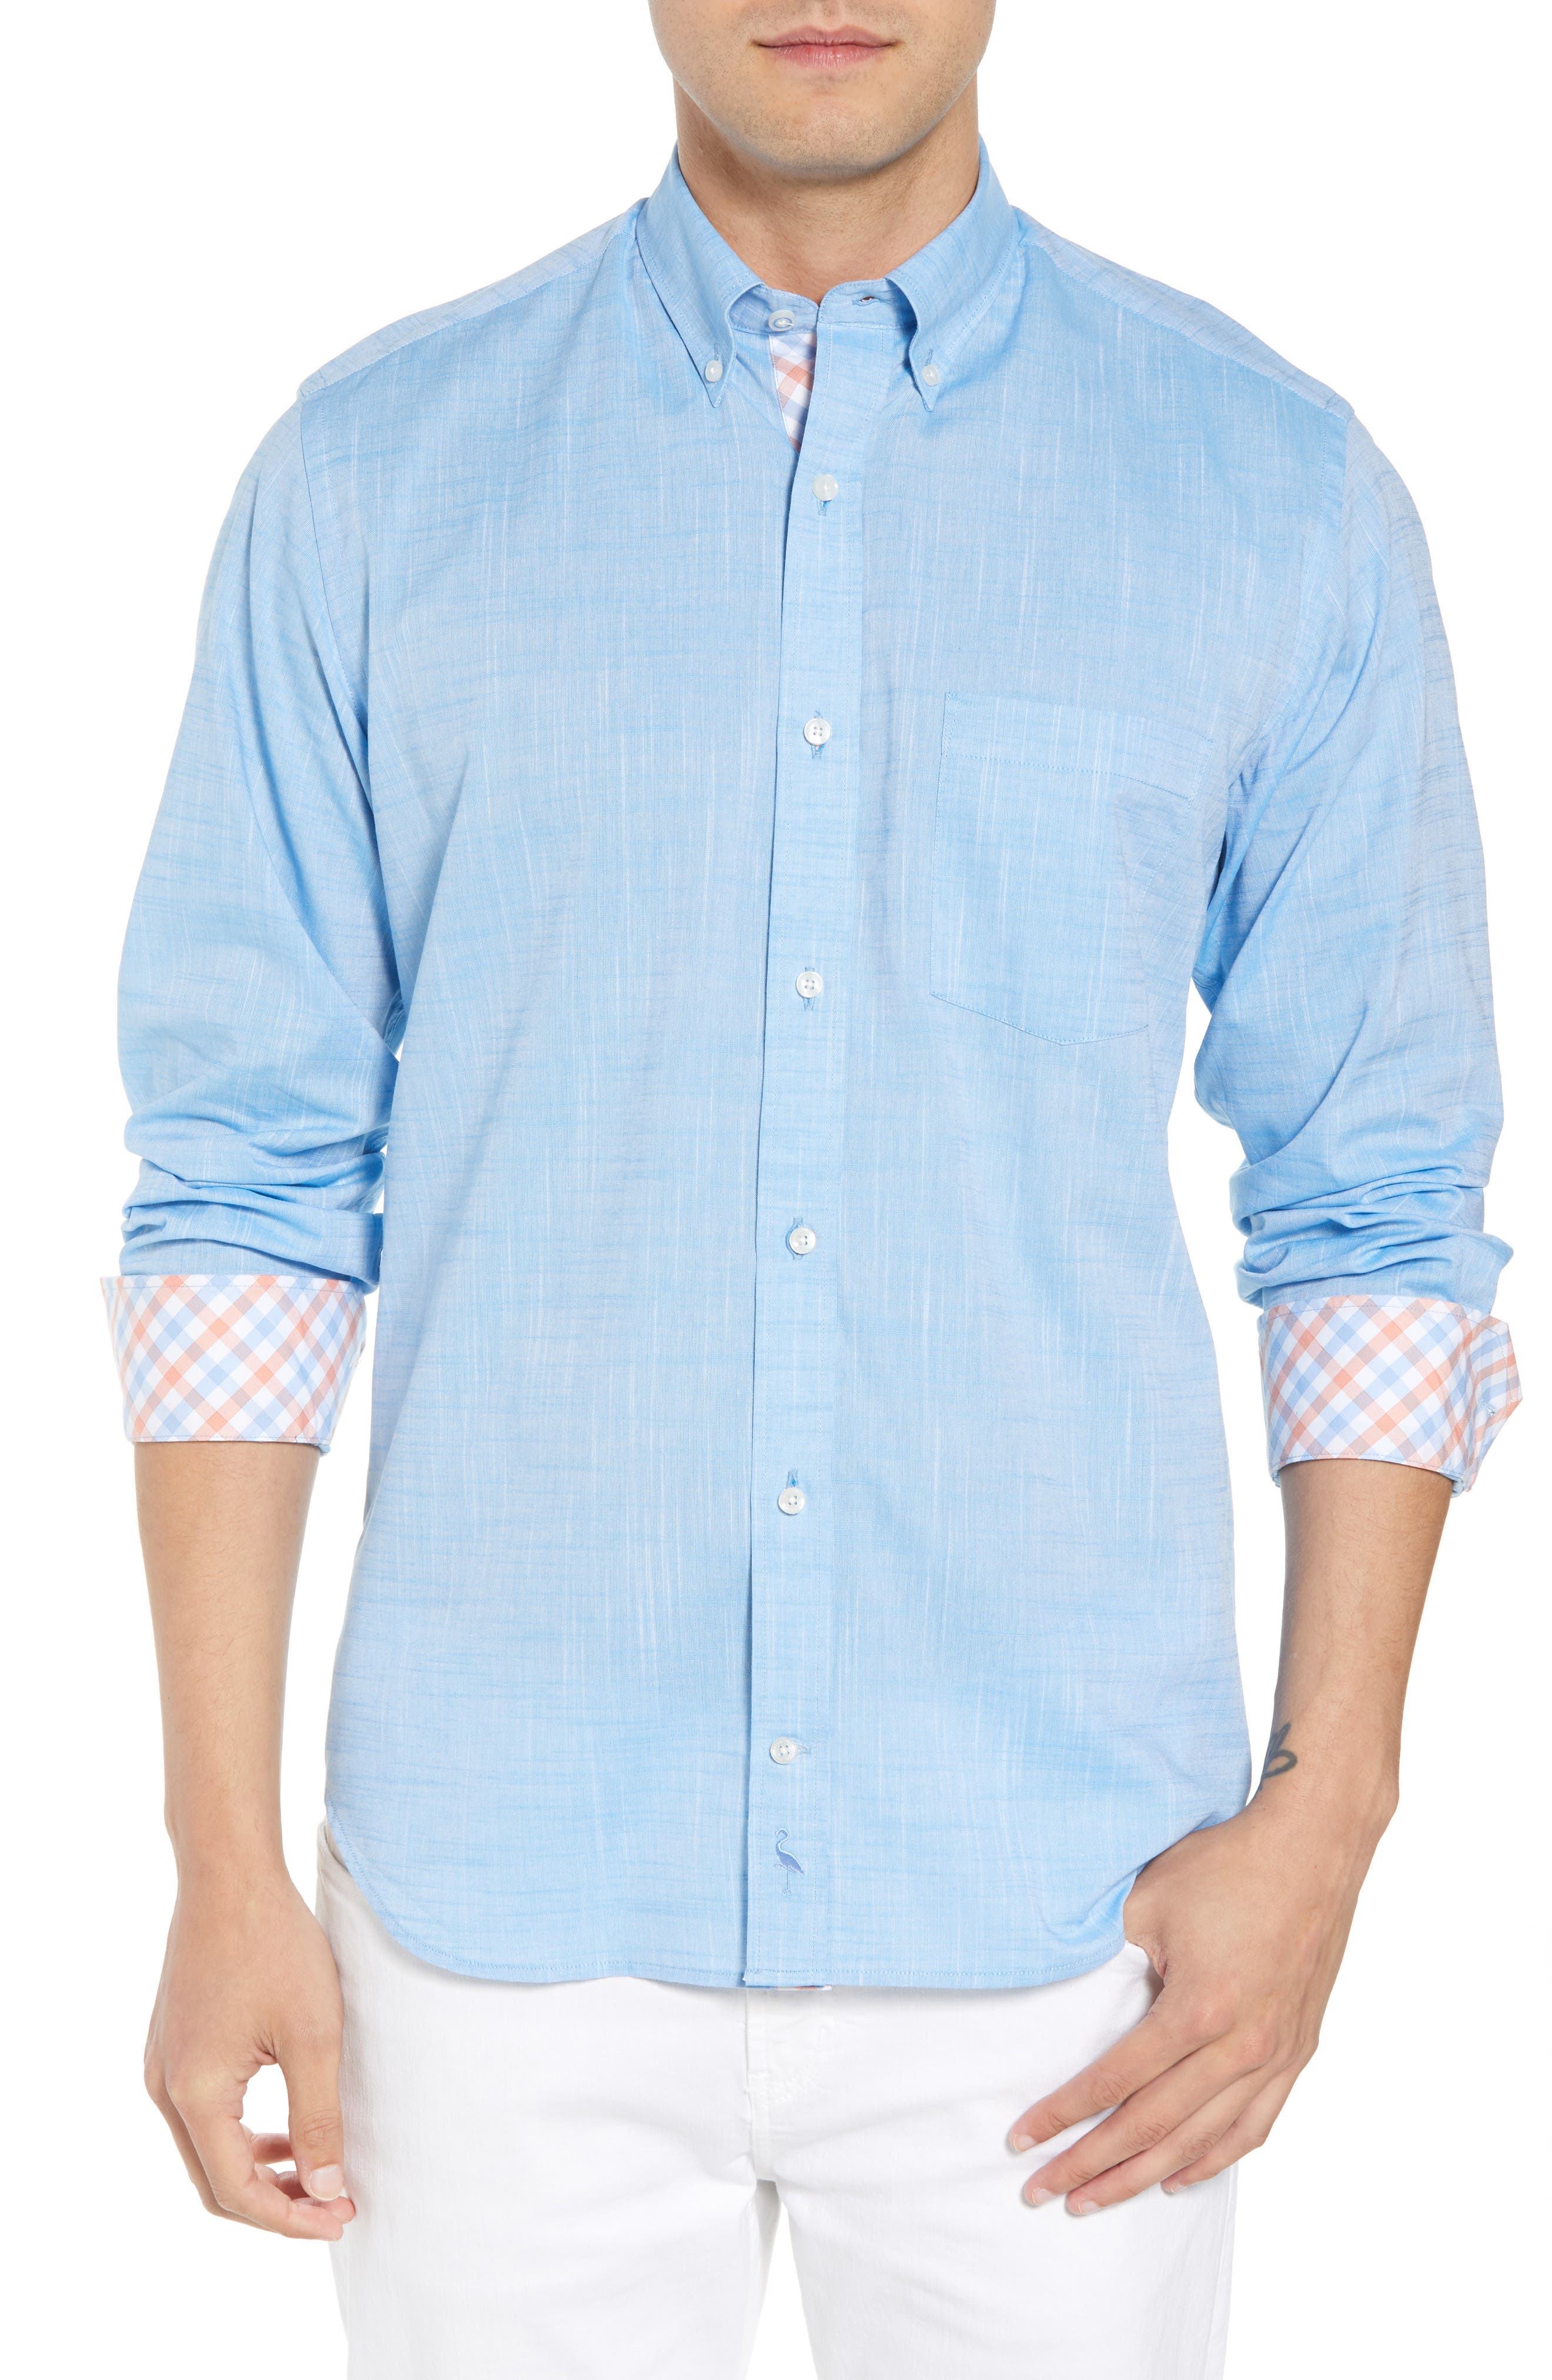 TailorByrd Leith Regular Fit Check Sport Shirt Cheap Sale Store Big Discount For Sale Clearance Cheapest Price sEIxn